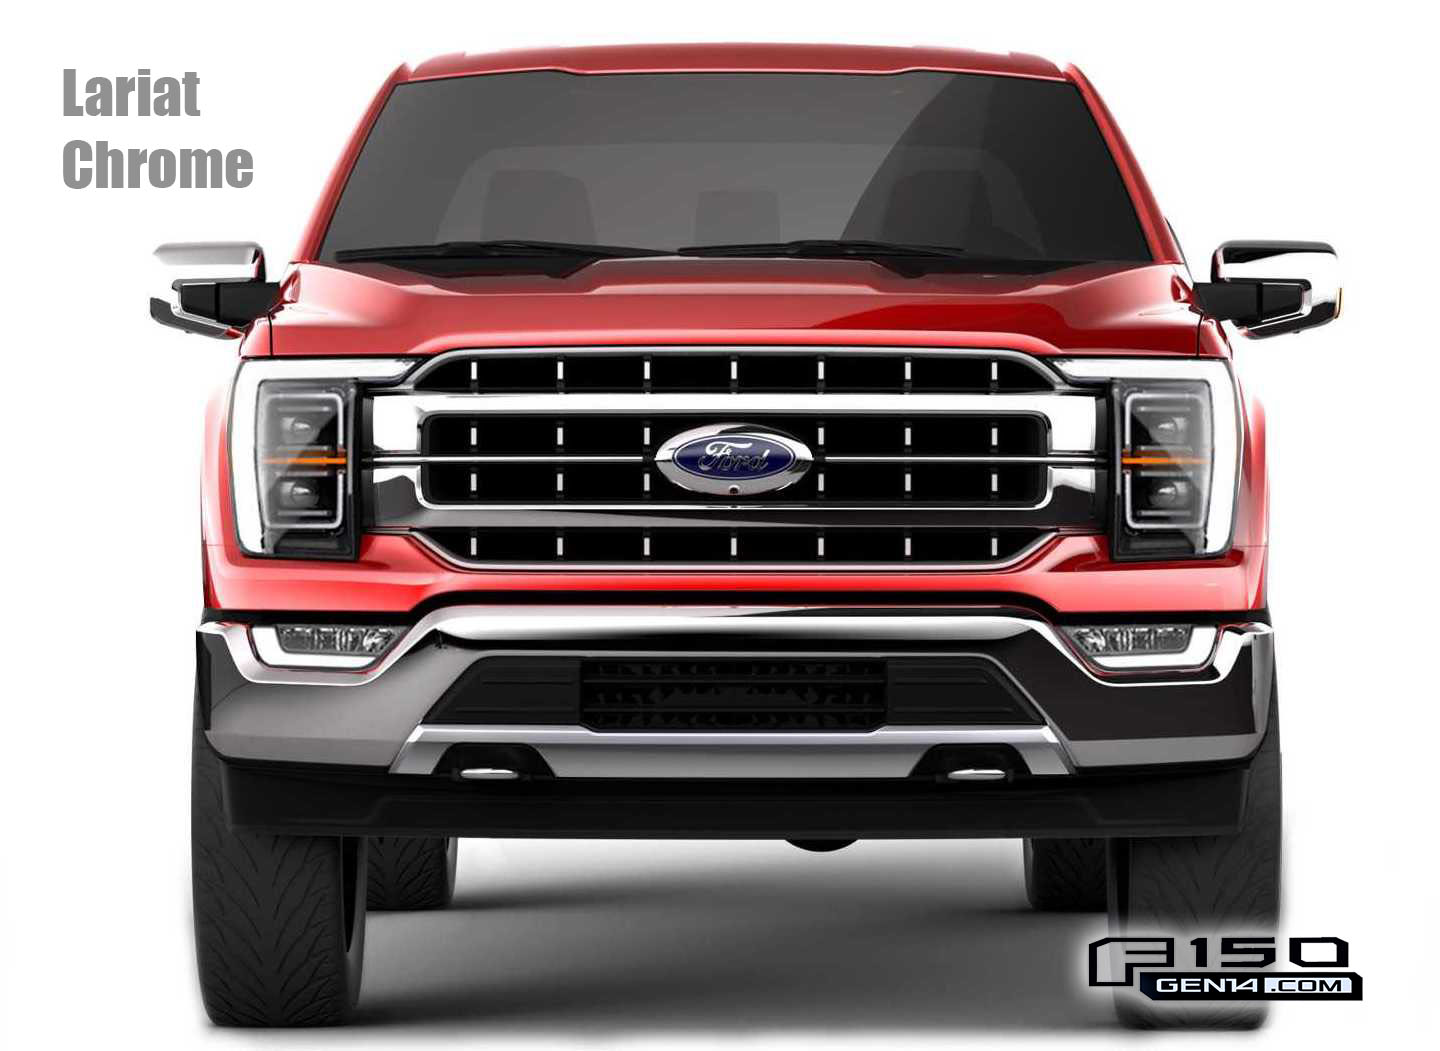 2021-ford-f-150-Lariat-Chrome-grille-designs.jpg